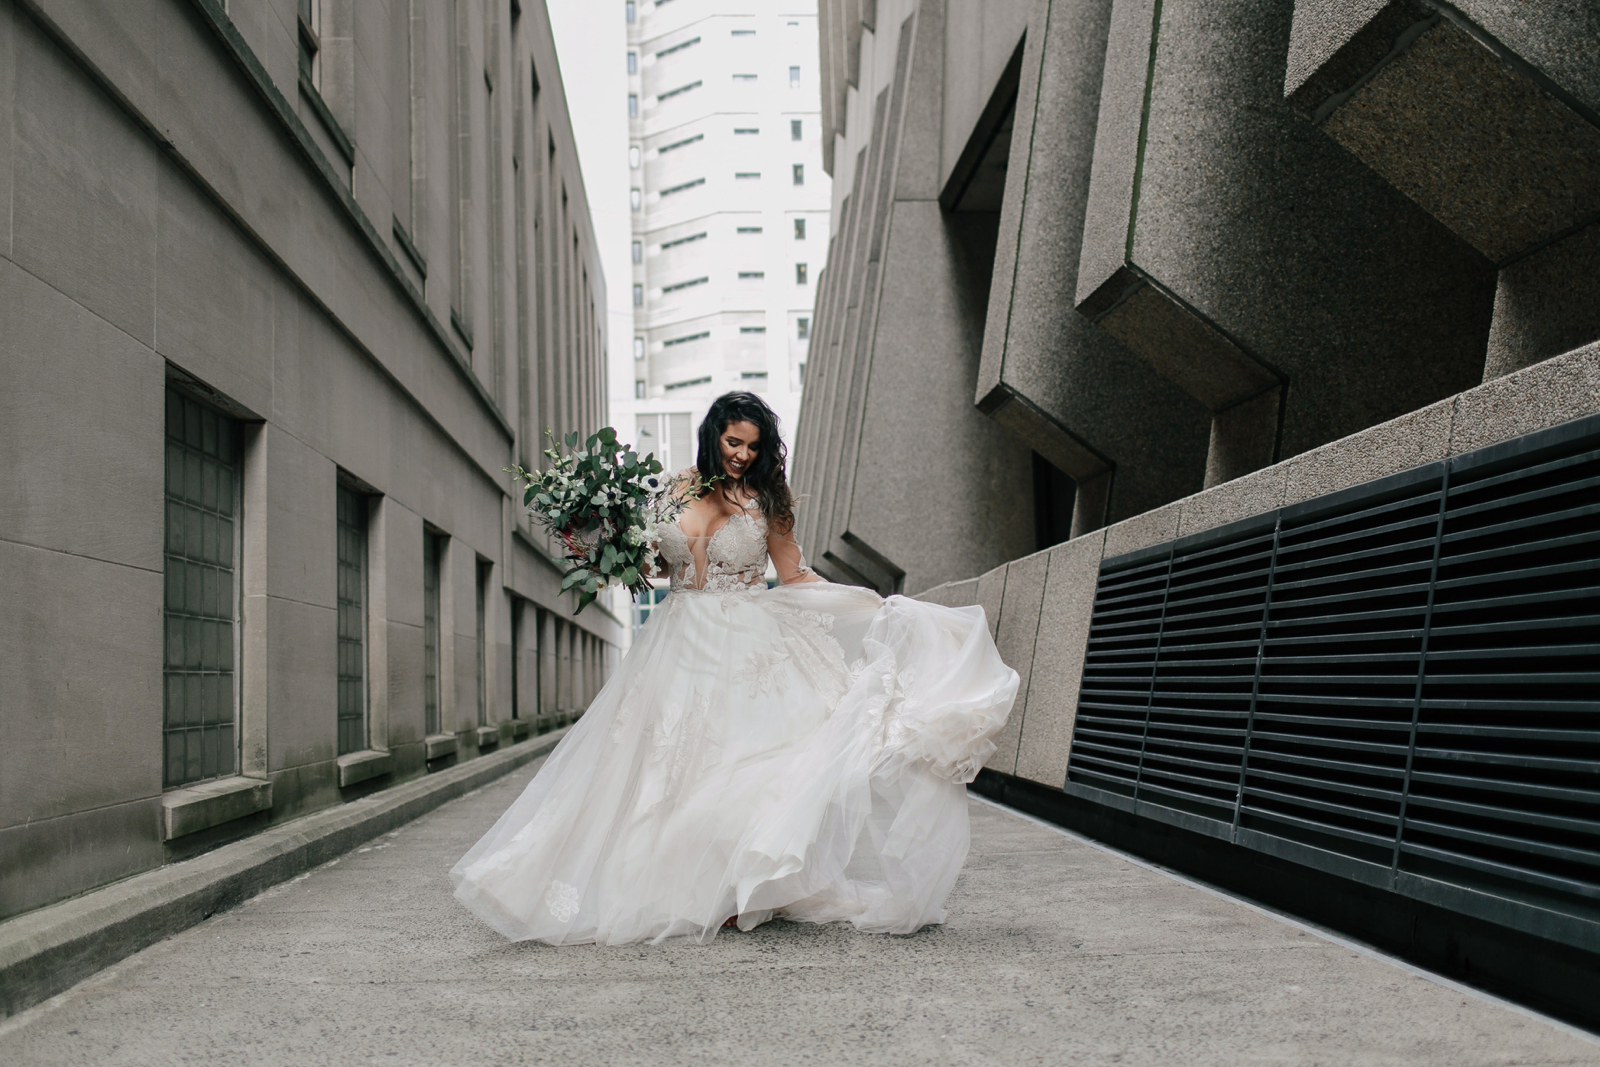 Bridal-Raleigh-Downtown-Styled-Shoot-8.jpg